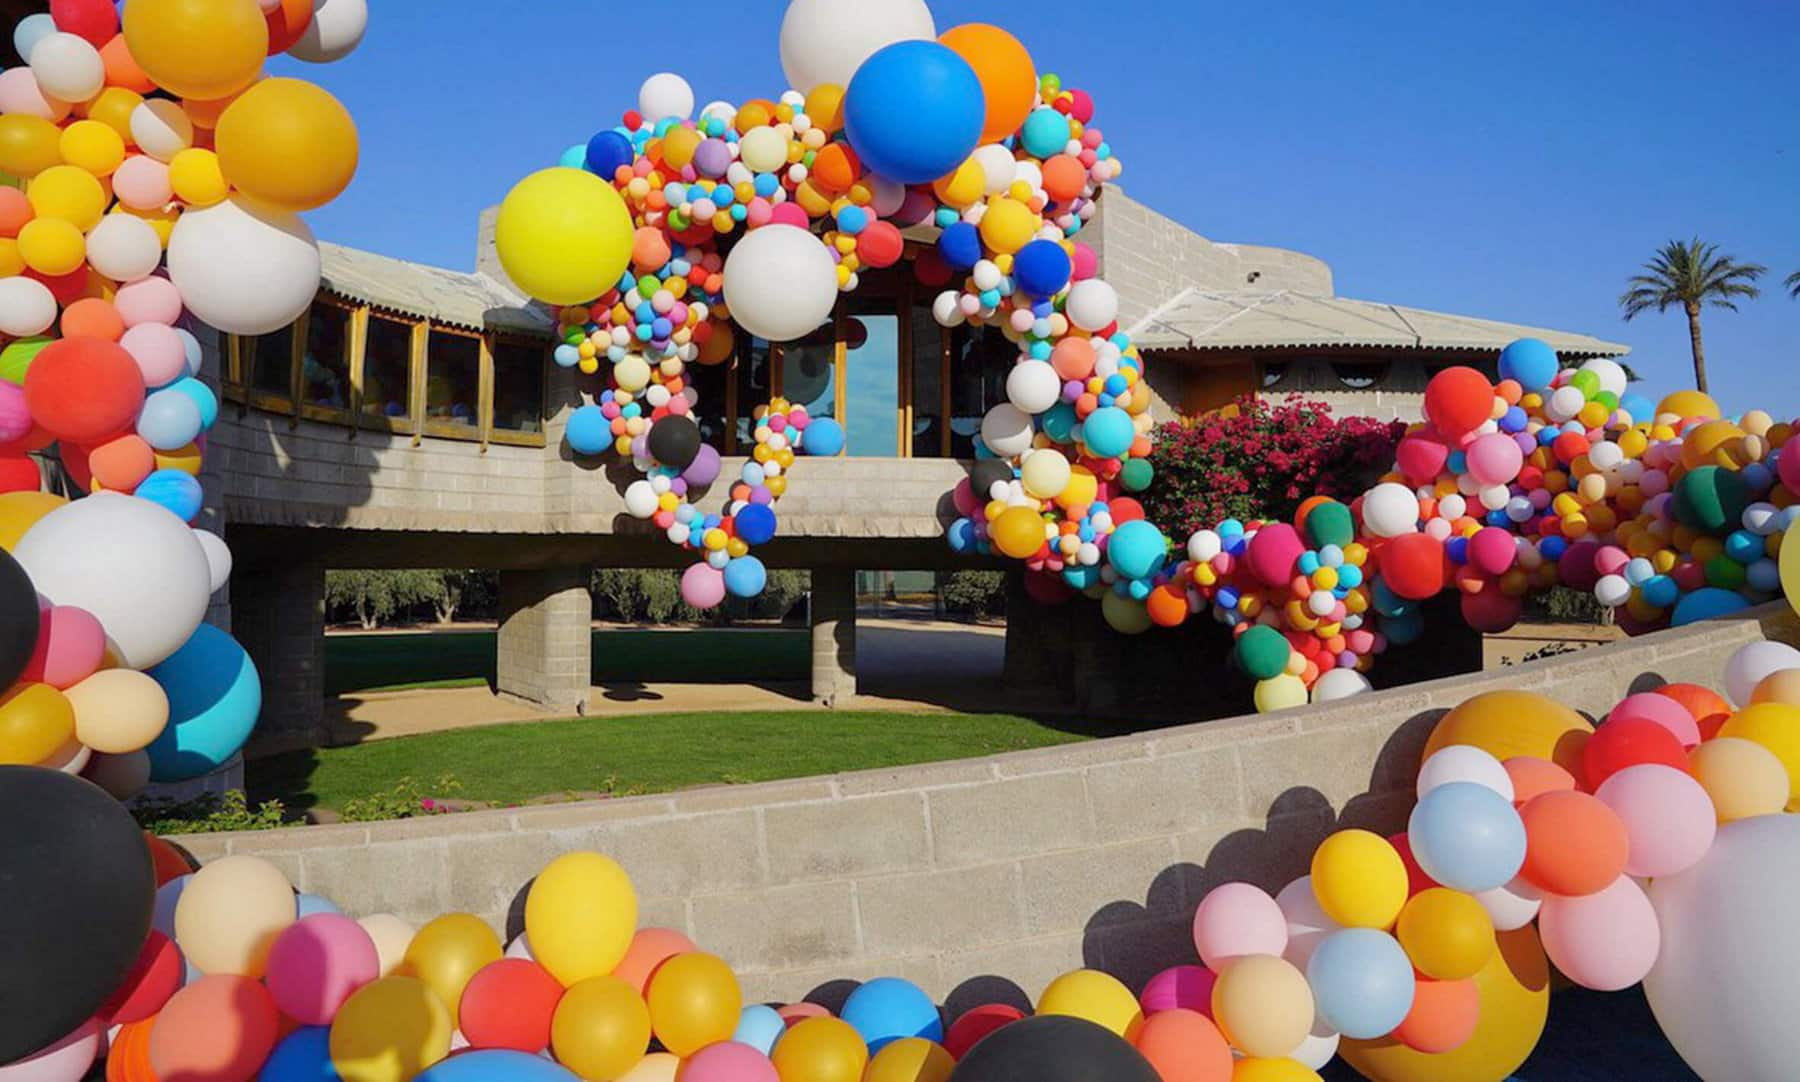 A color photo of vibrant balloons in various shades and sizes adorning the Frank Lloyd Wright house in Phoenix.